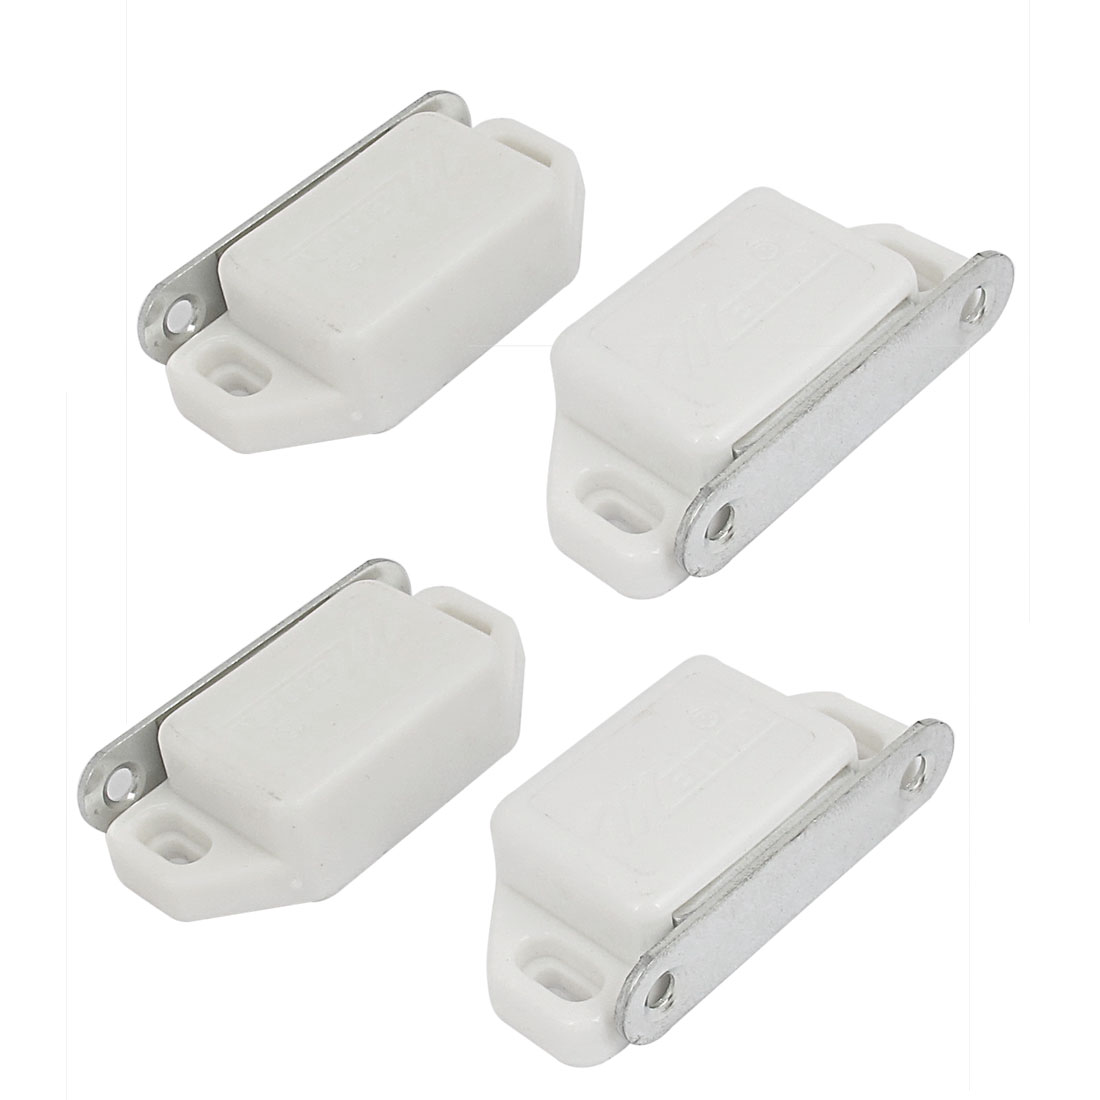 4pcs Cupboard Cabinet Closet Drawer Door Magnetic Latch Catch 58mm Long